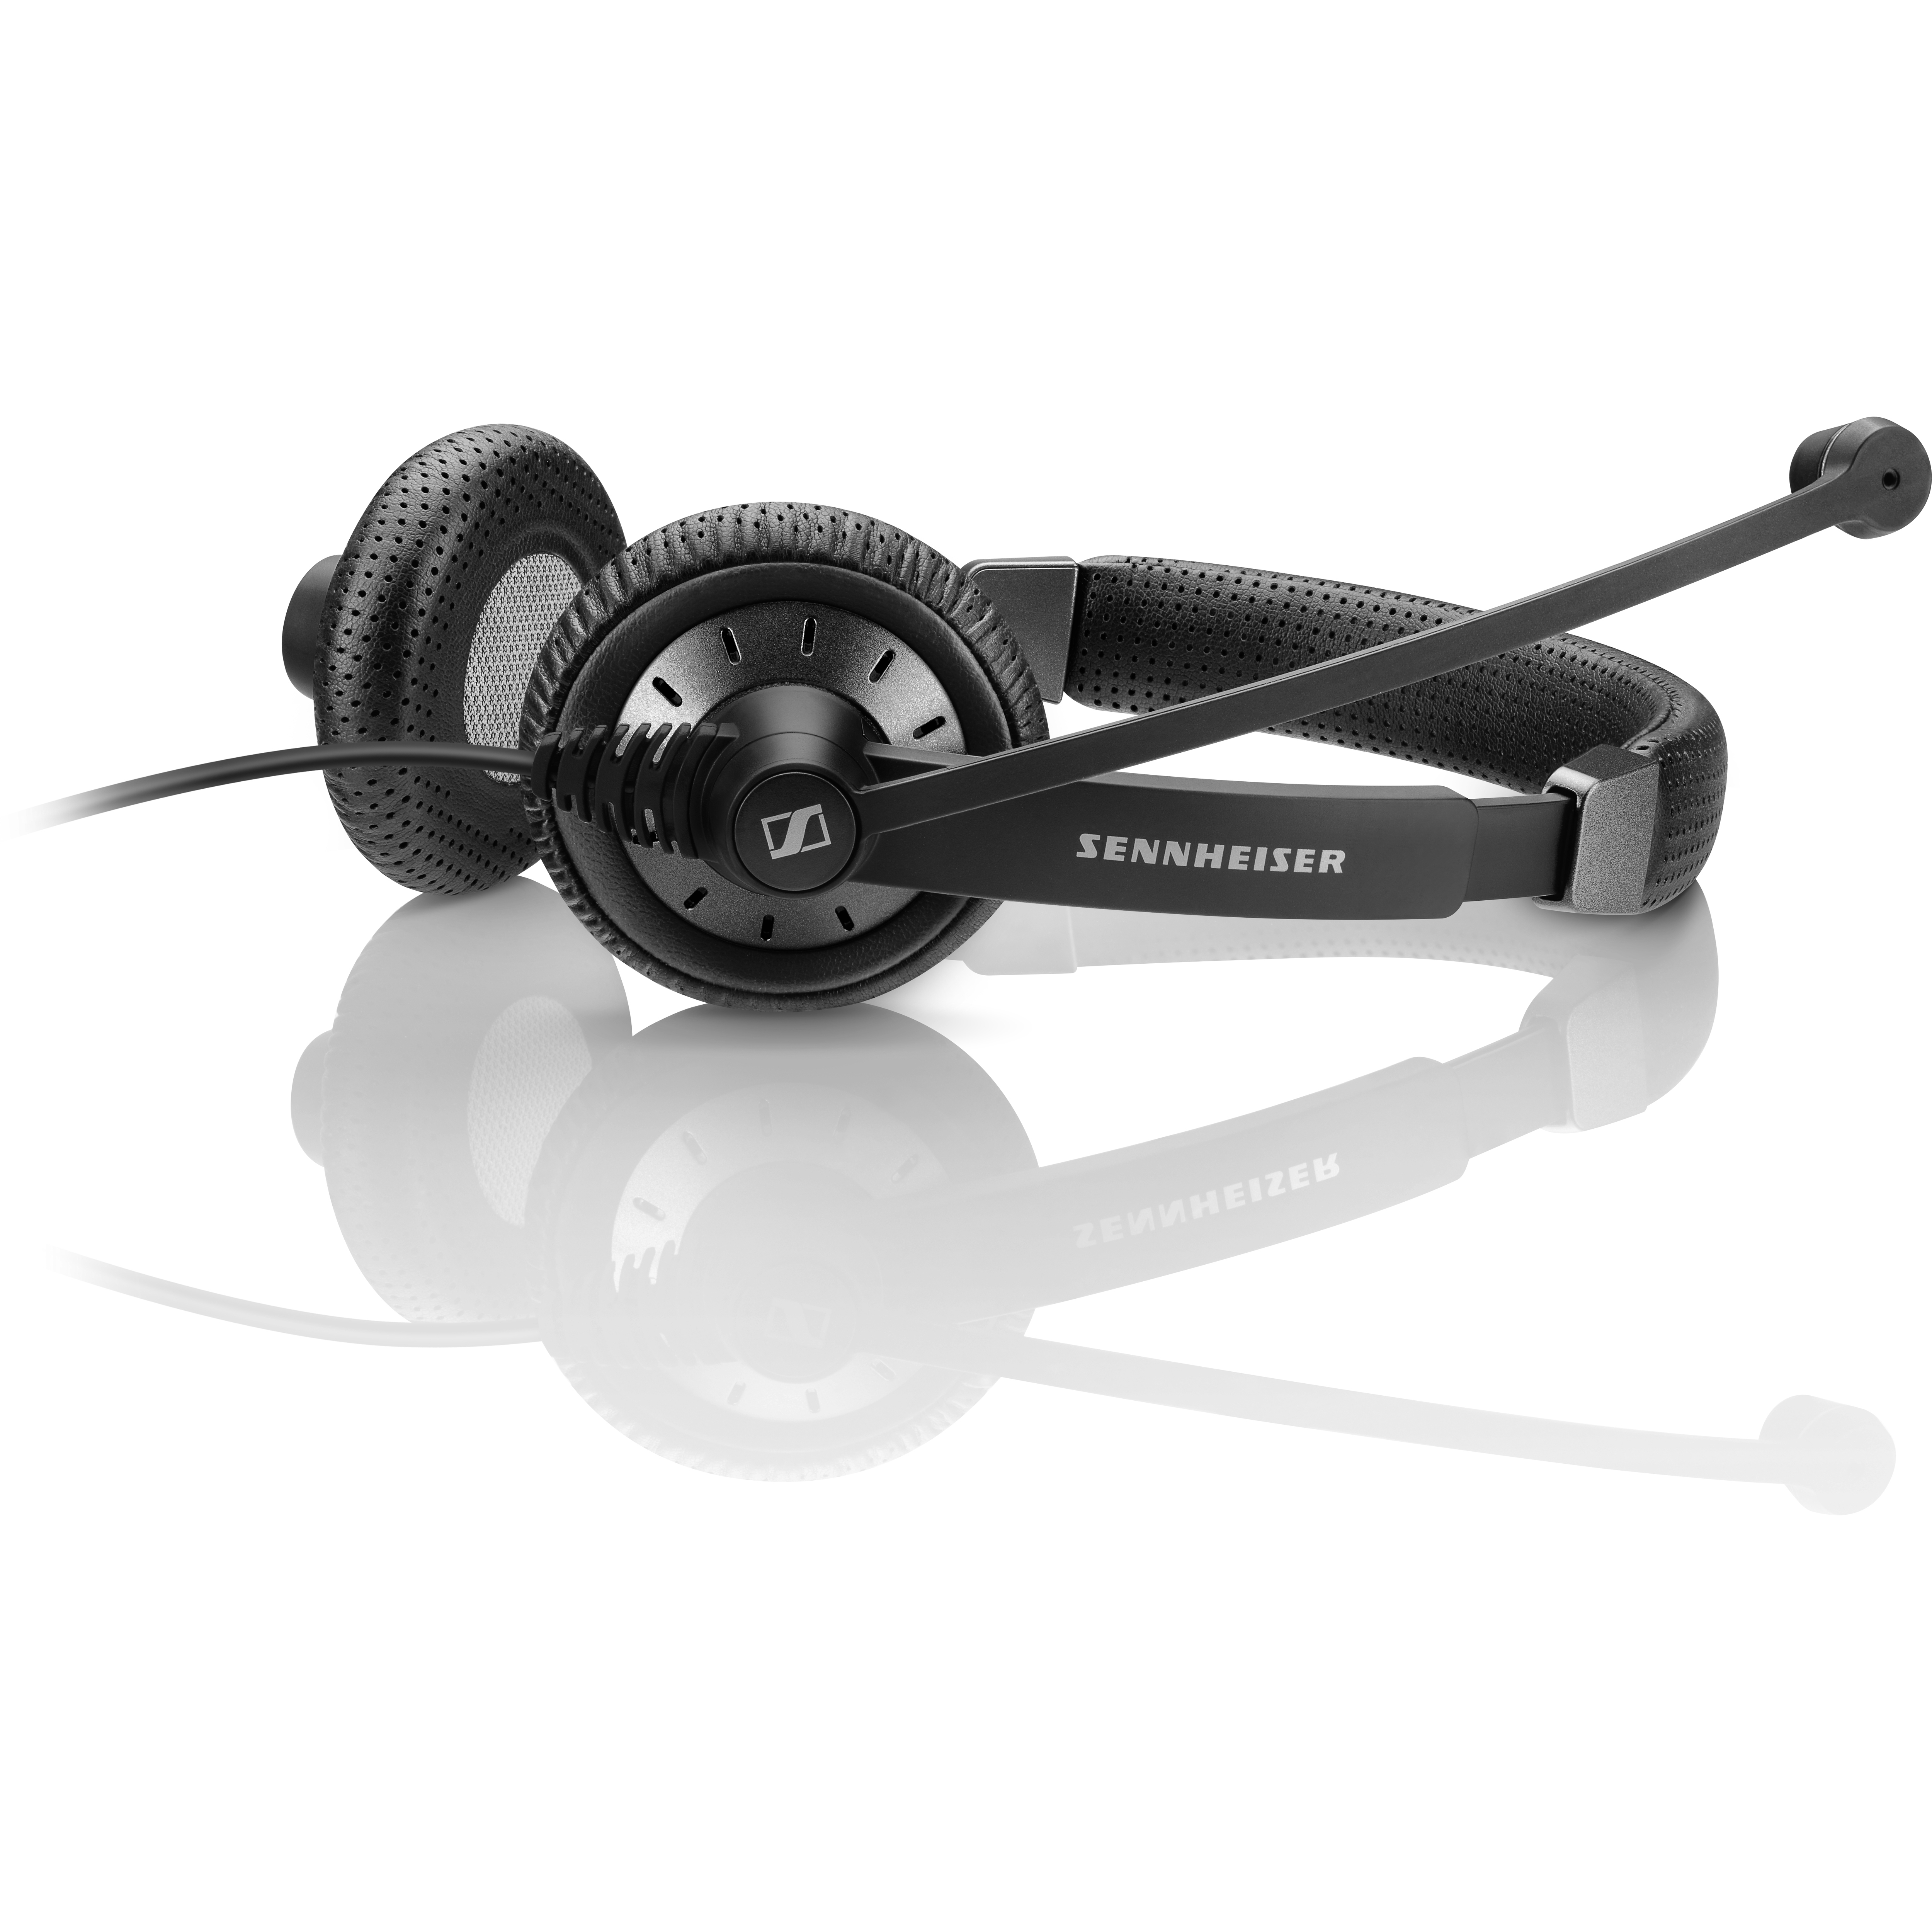 Sennheiser Culture Plus SC 75 USB MS Wired Stereo Headset - Over-the-head - Supra-aural - Black